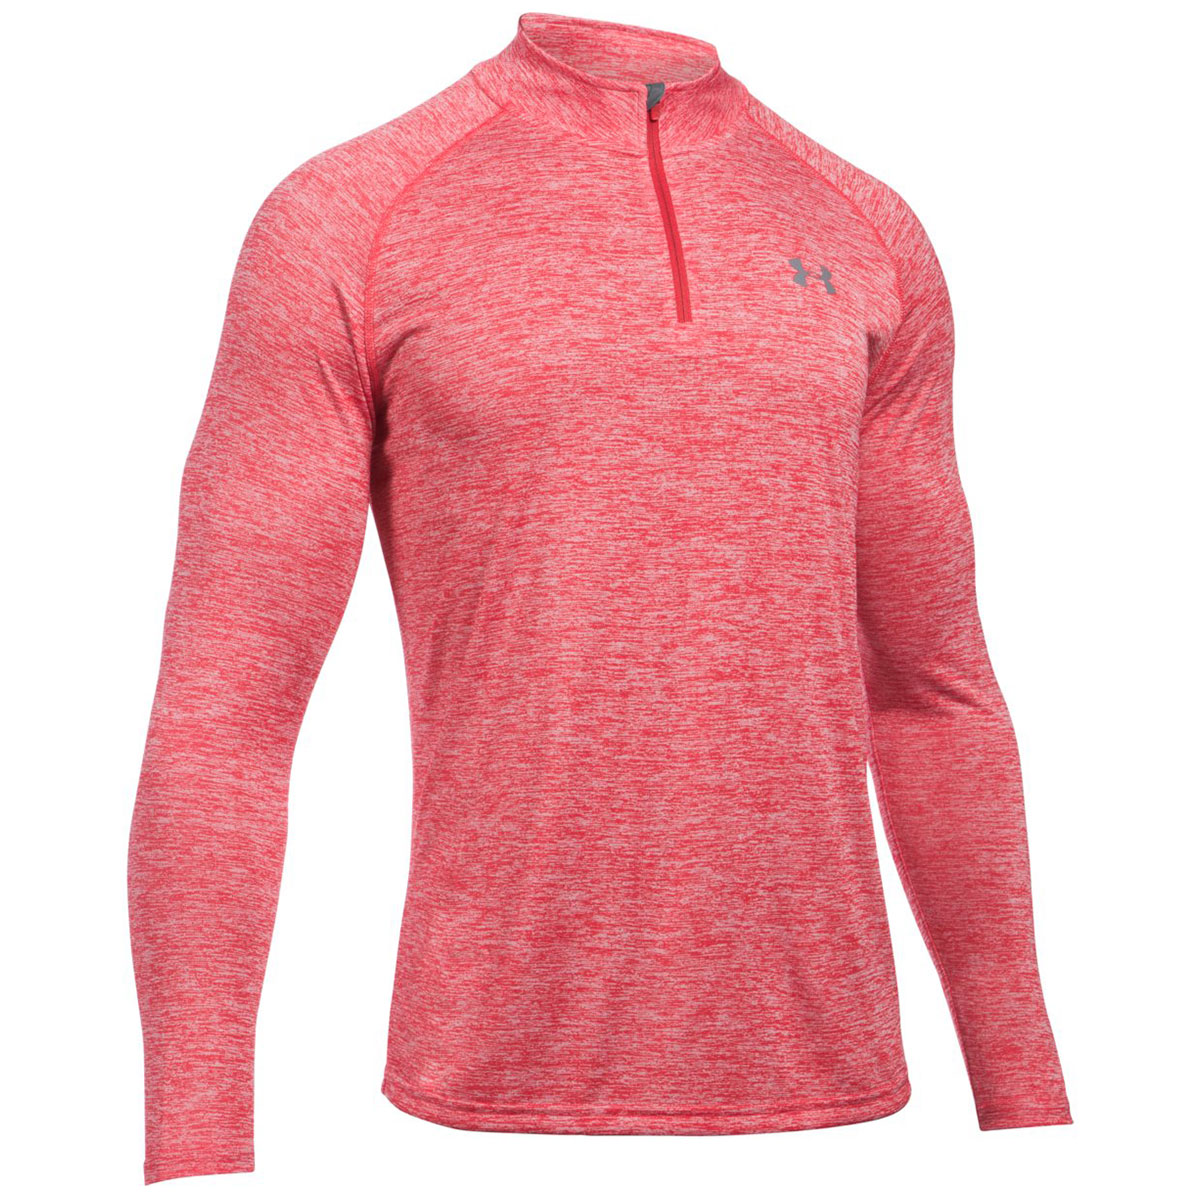 Under-Armour-Mens-UA-Tech-1-4-Zip-Long-Sleeve-Top-Workout-Layer-27-OFF-RRP thumbnail 67